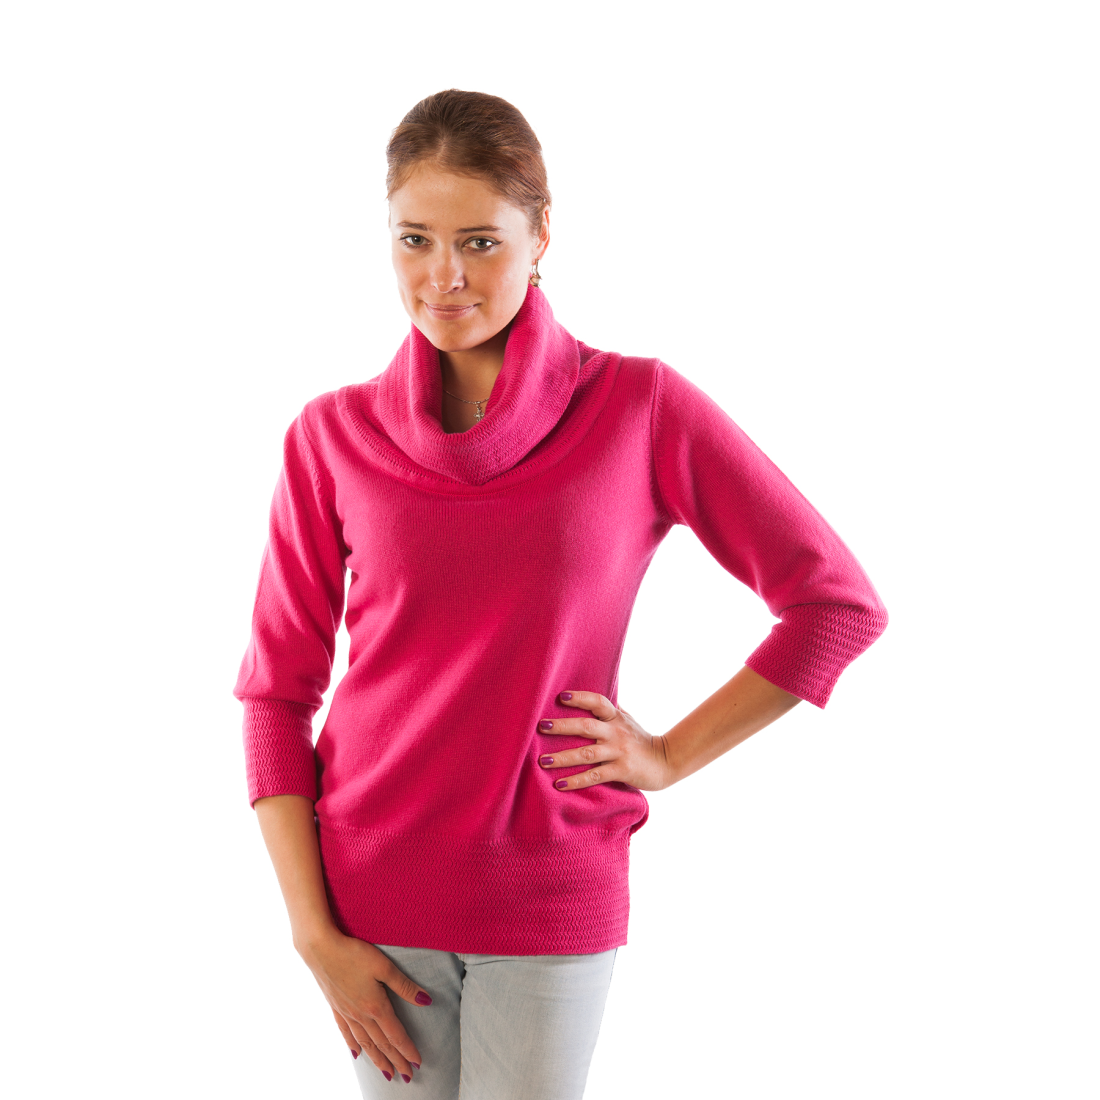 Stay cozy in stylish women's sweaters. Expand your wardrobe with women's sweaters for any occasion. Choose from a wide variety of colors, patterns and quality materials.